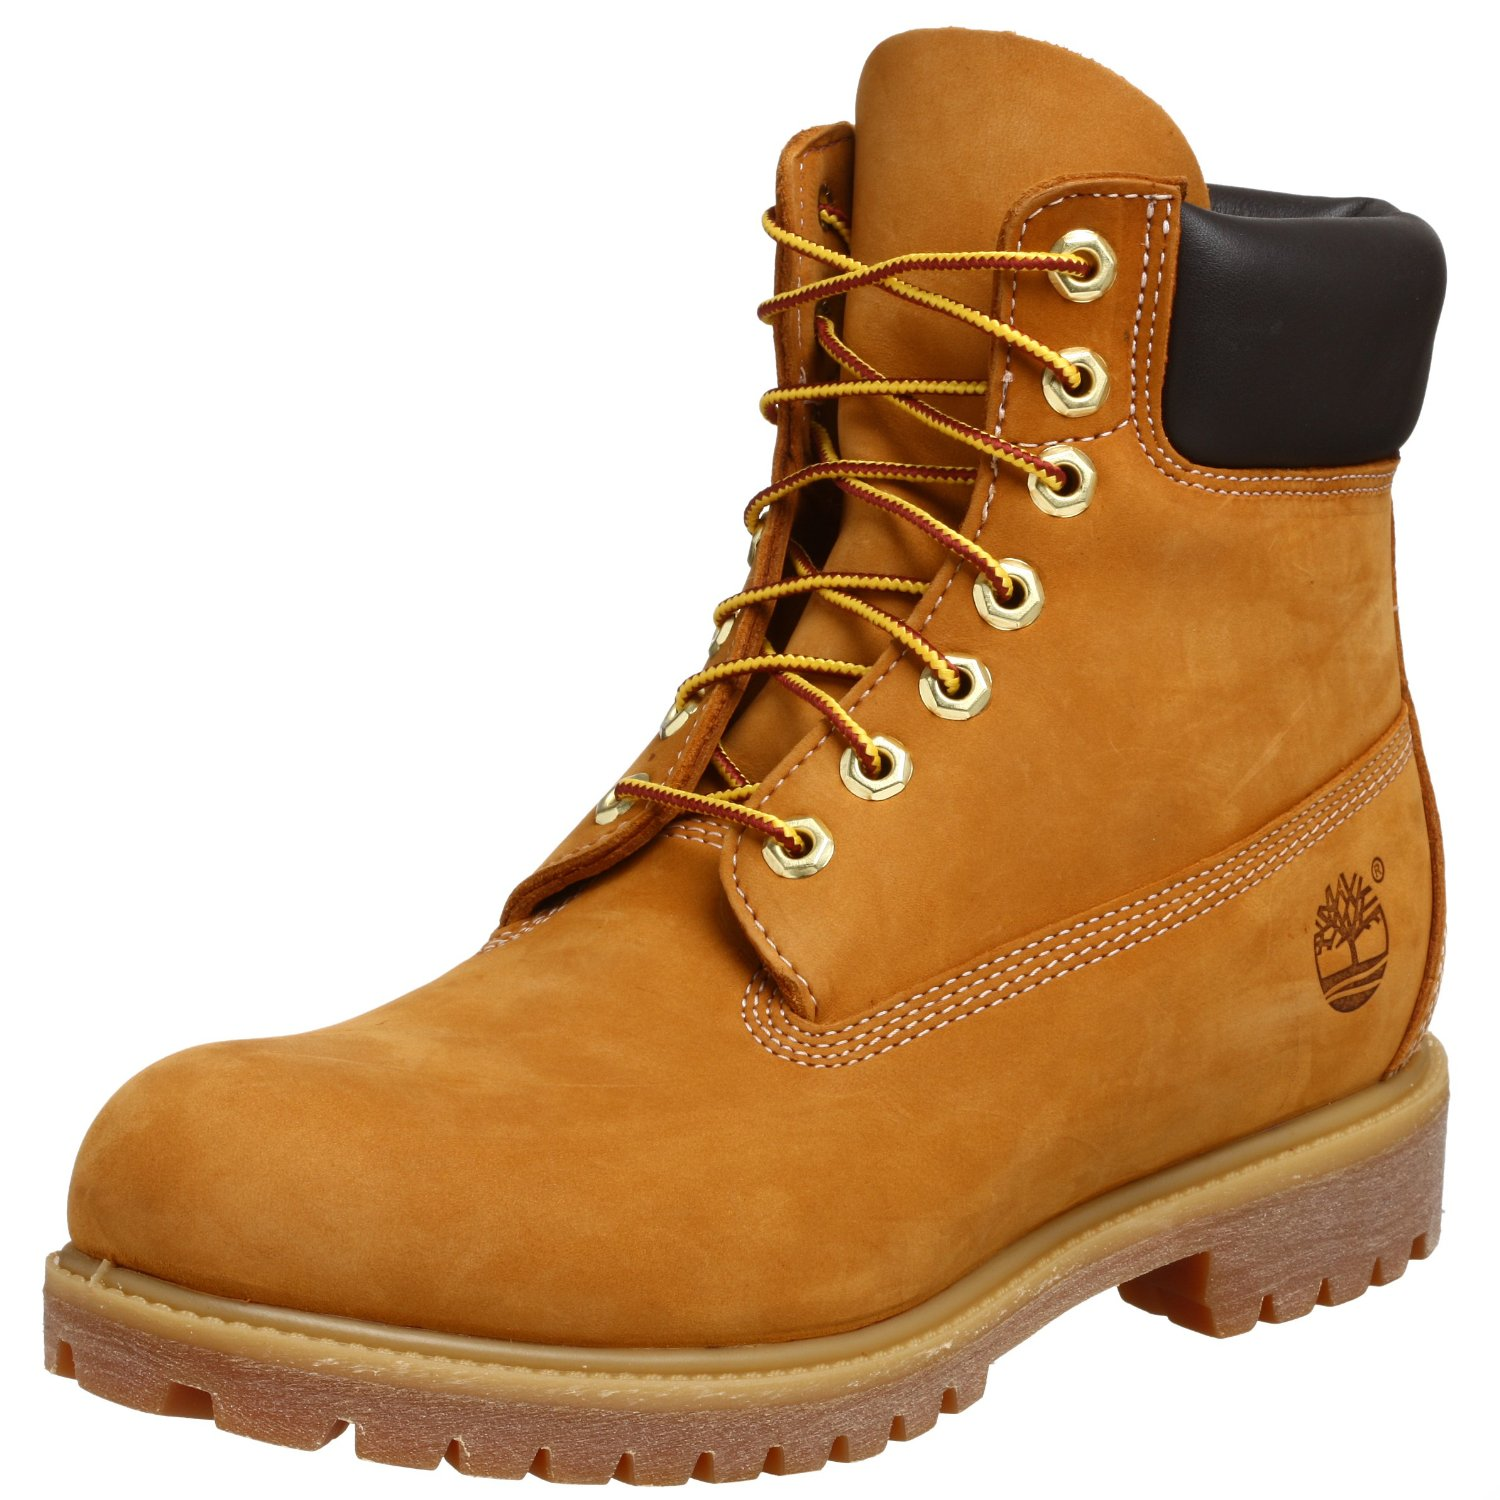 Timberland Clothing & Shoes: 694qusujiwuxi.ml - Your Online Clothing & Shoes Store! Get 5% in rewards with Club O!